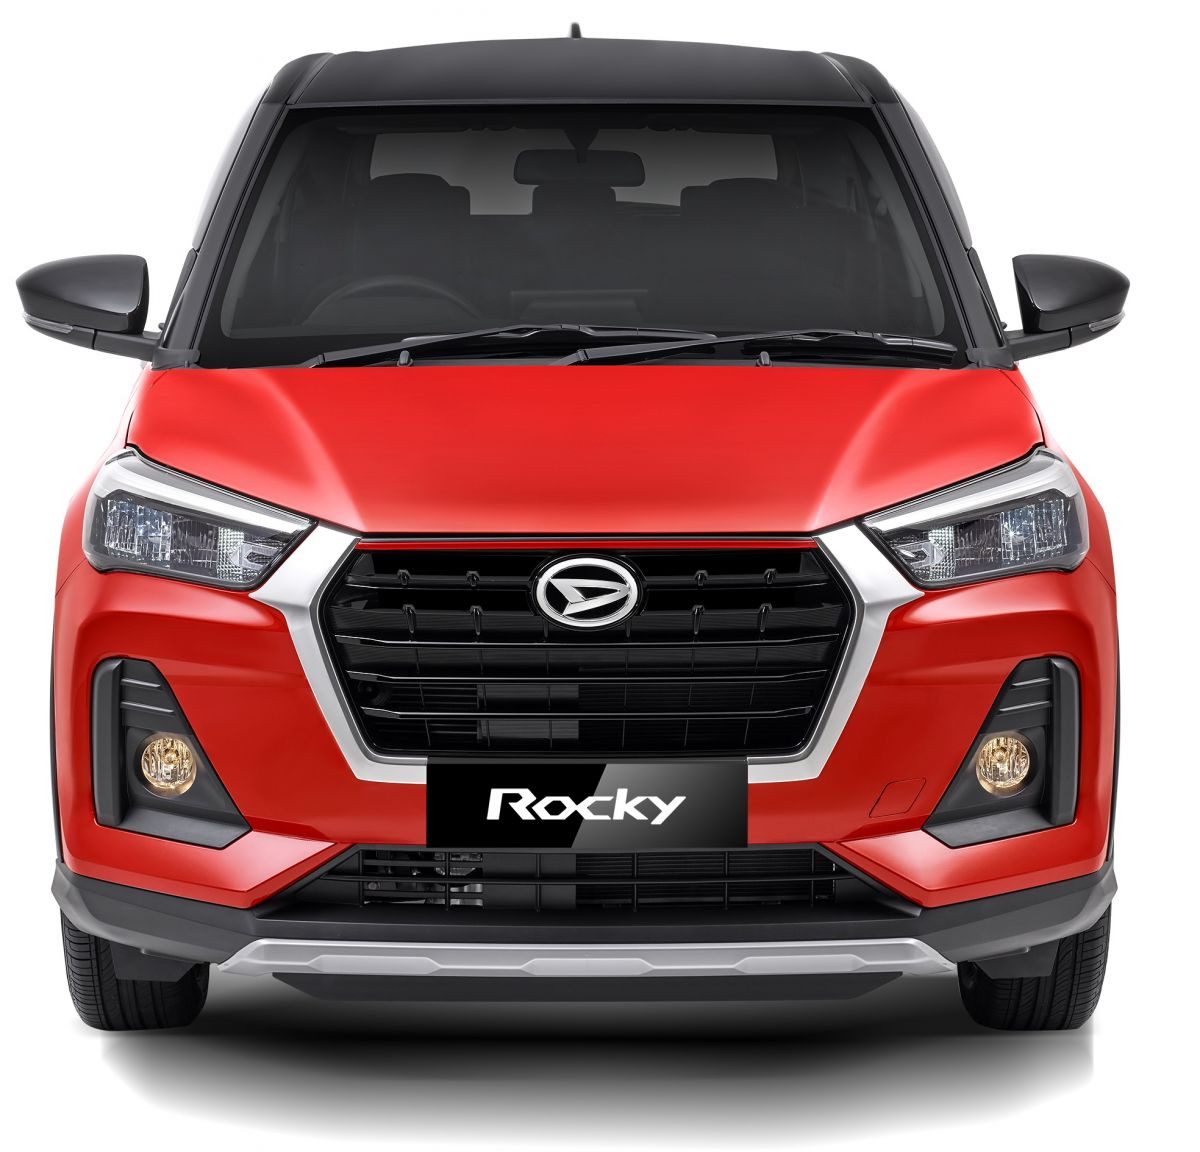 The brand-new SUV super product was launched for 339 million dong, cheaper than the Hyundai Grand i10 and KIA Morning photo 2